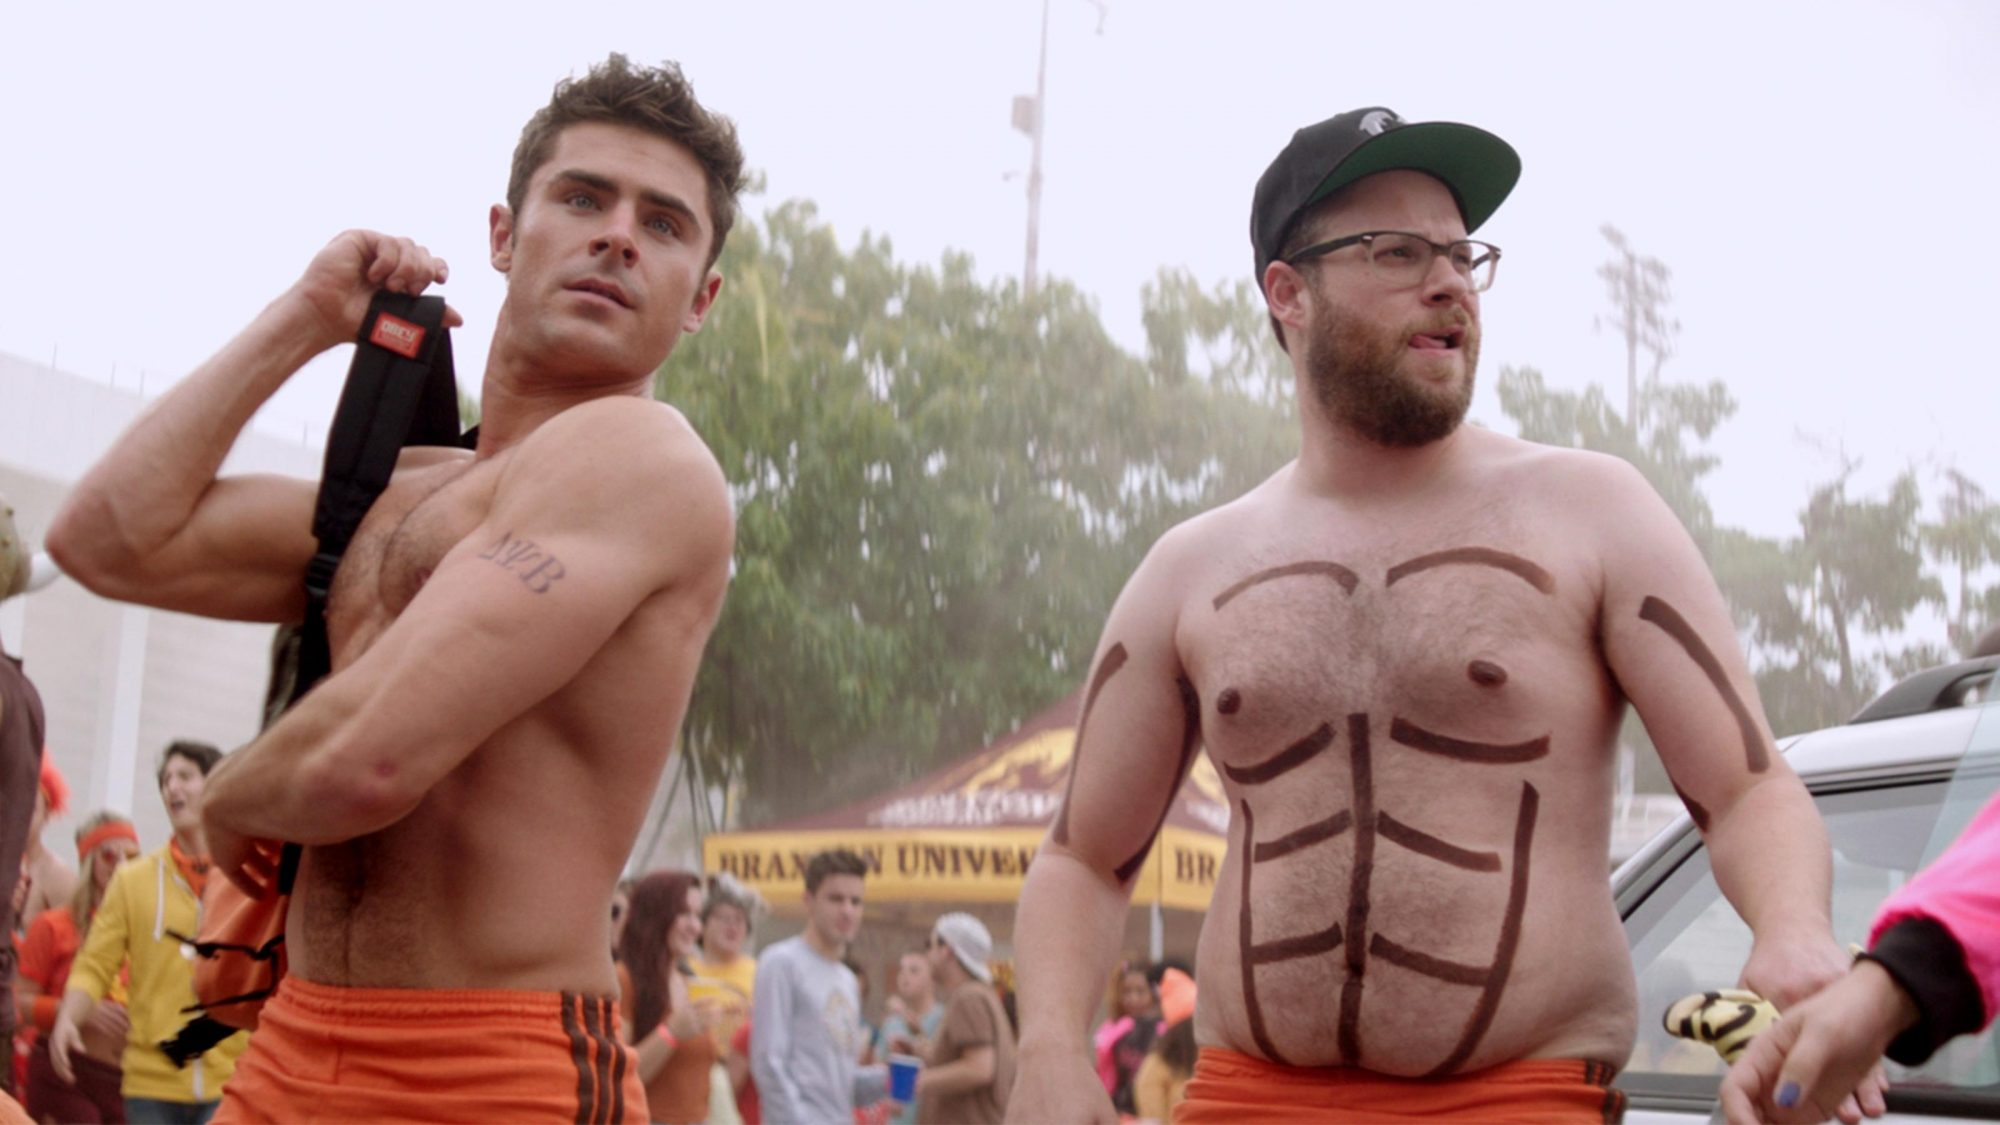 Neighbors 2: Sorority Rising (2016)Zac Efron, Seth Rogen